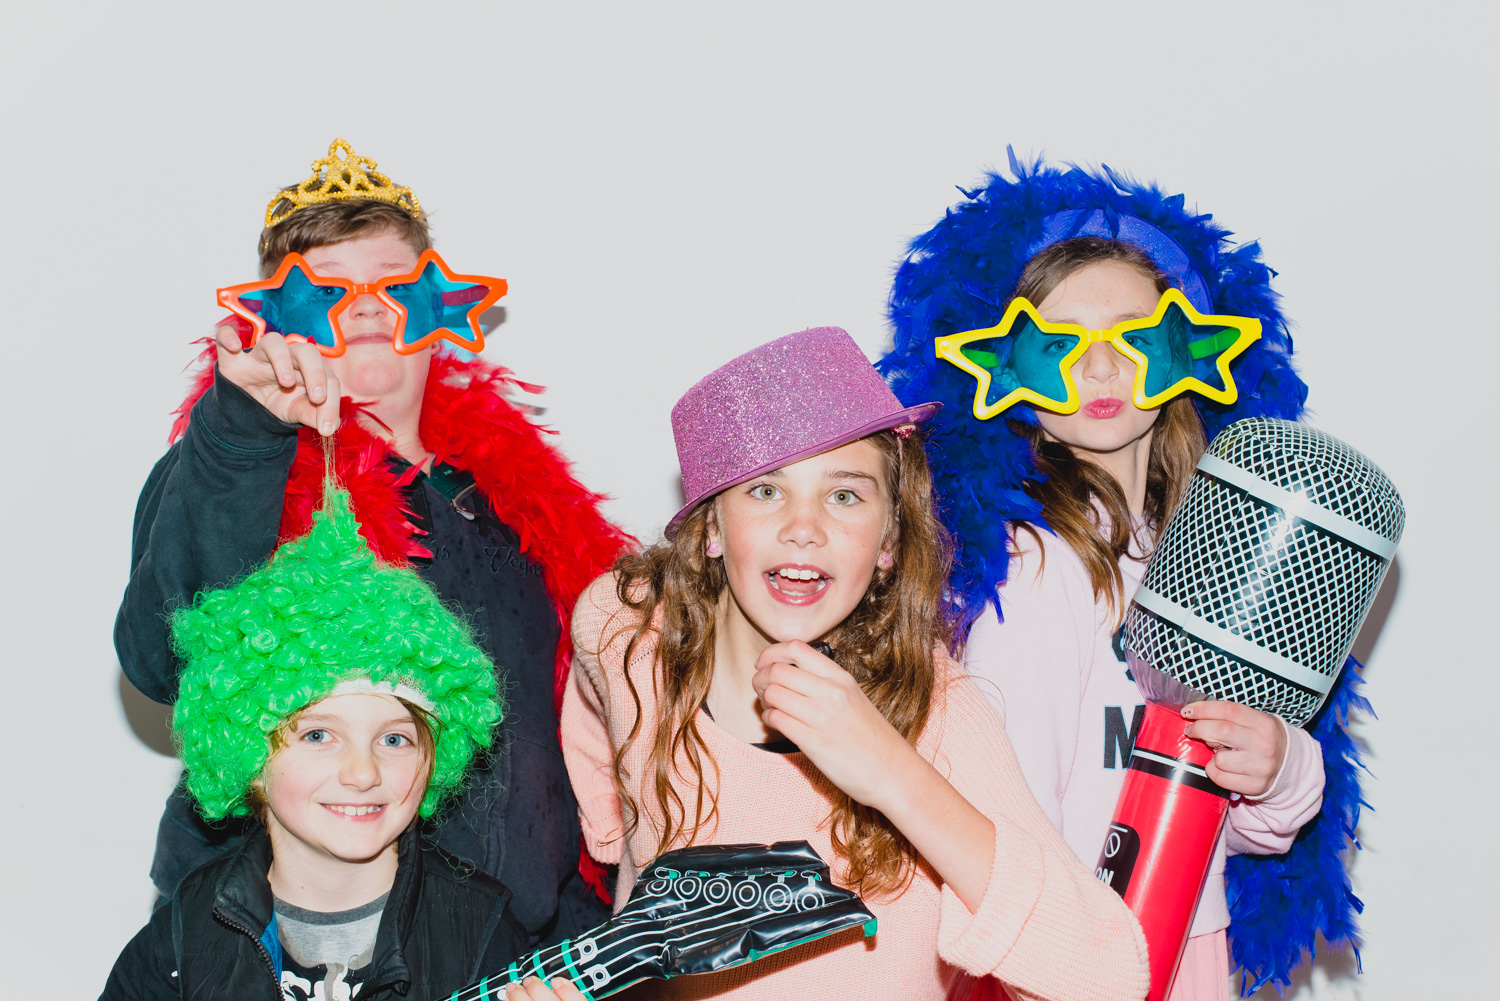 Malmsbury P.S. Disco Photo Booth